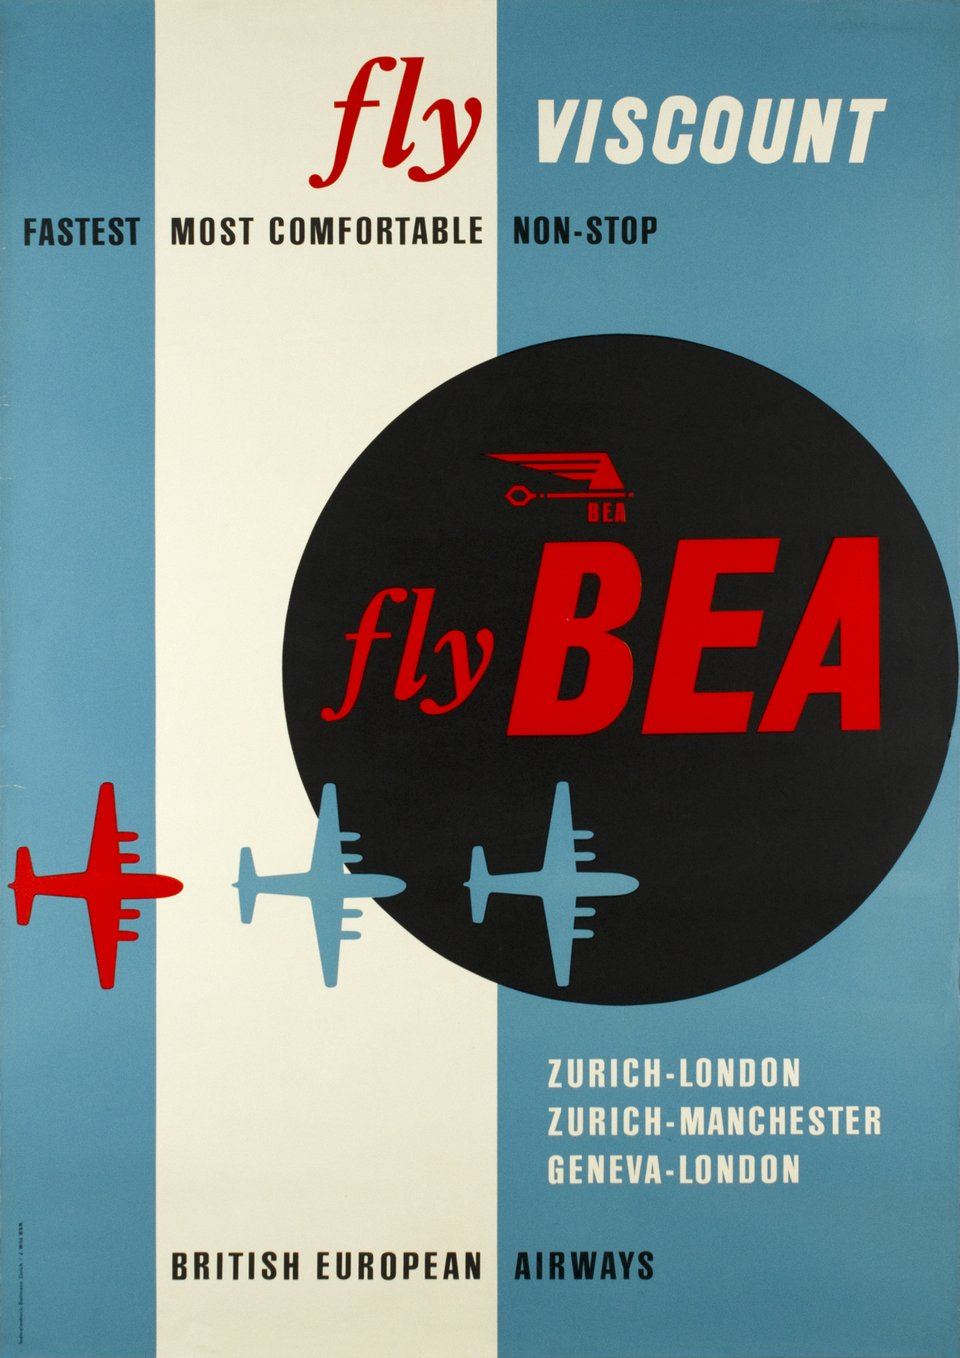 BEA - Fly BEA, British European Airways, Fly Viscount – Affiche ancienne – J WILD – 1950